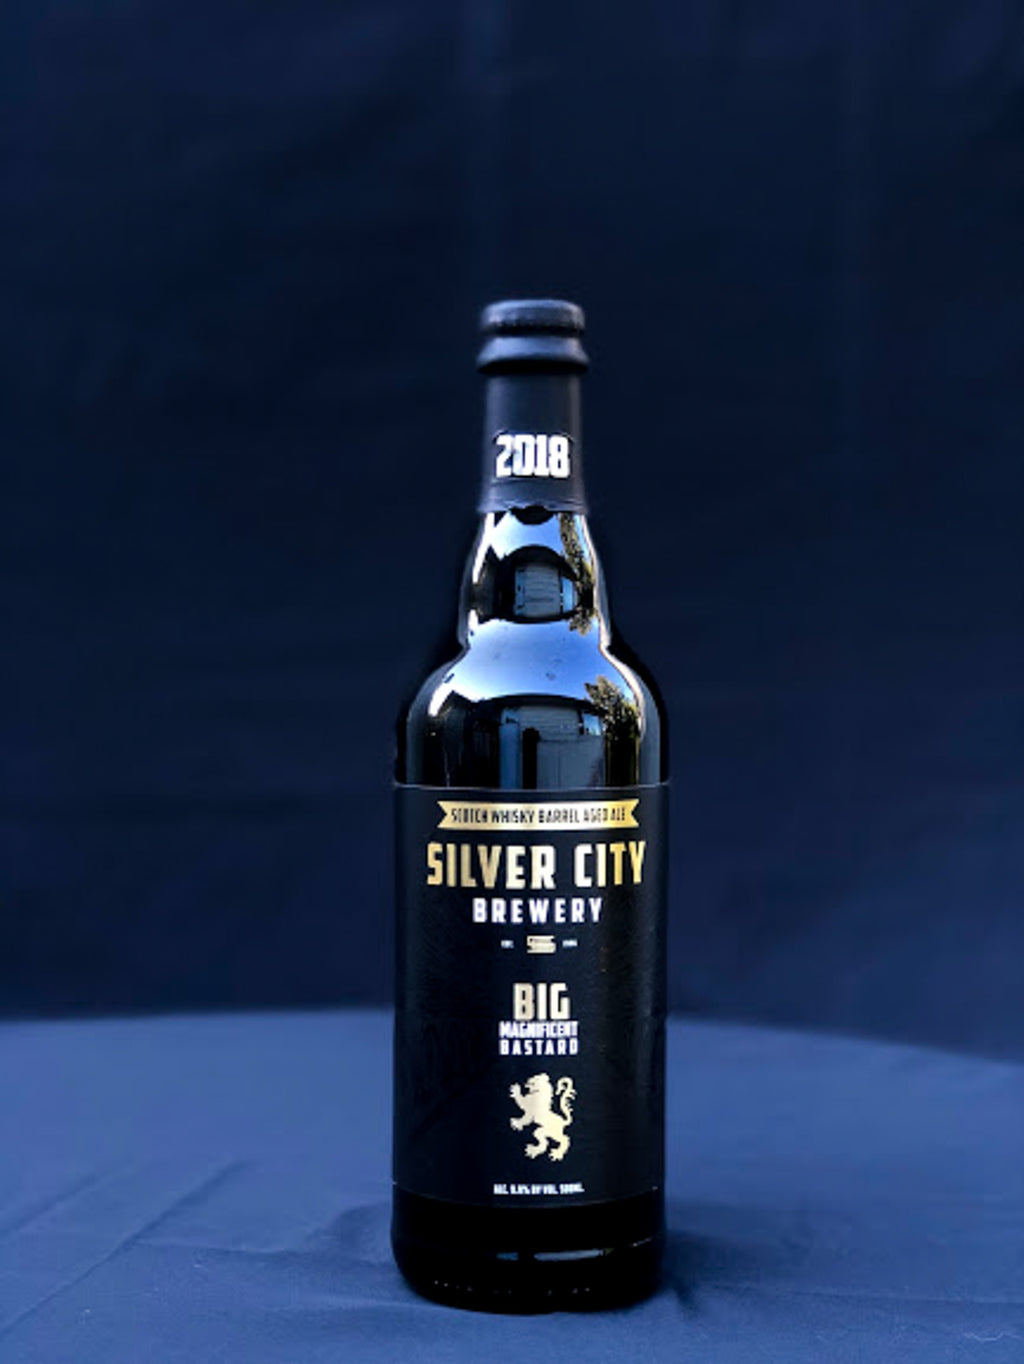 Silver City Scotch Whisky Barrel Aged Big Magnificent Bastard